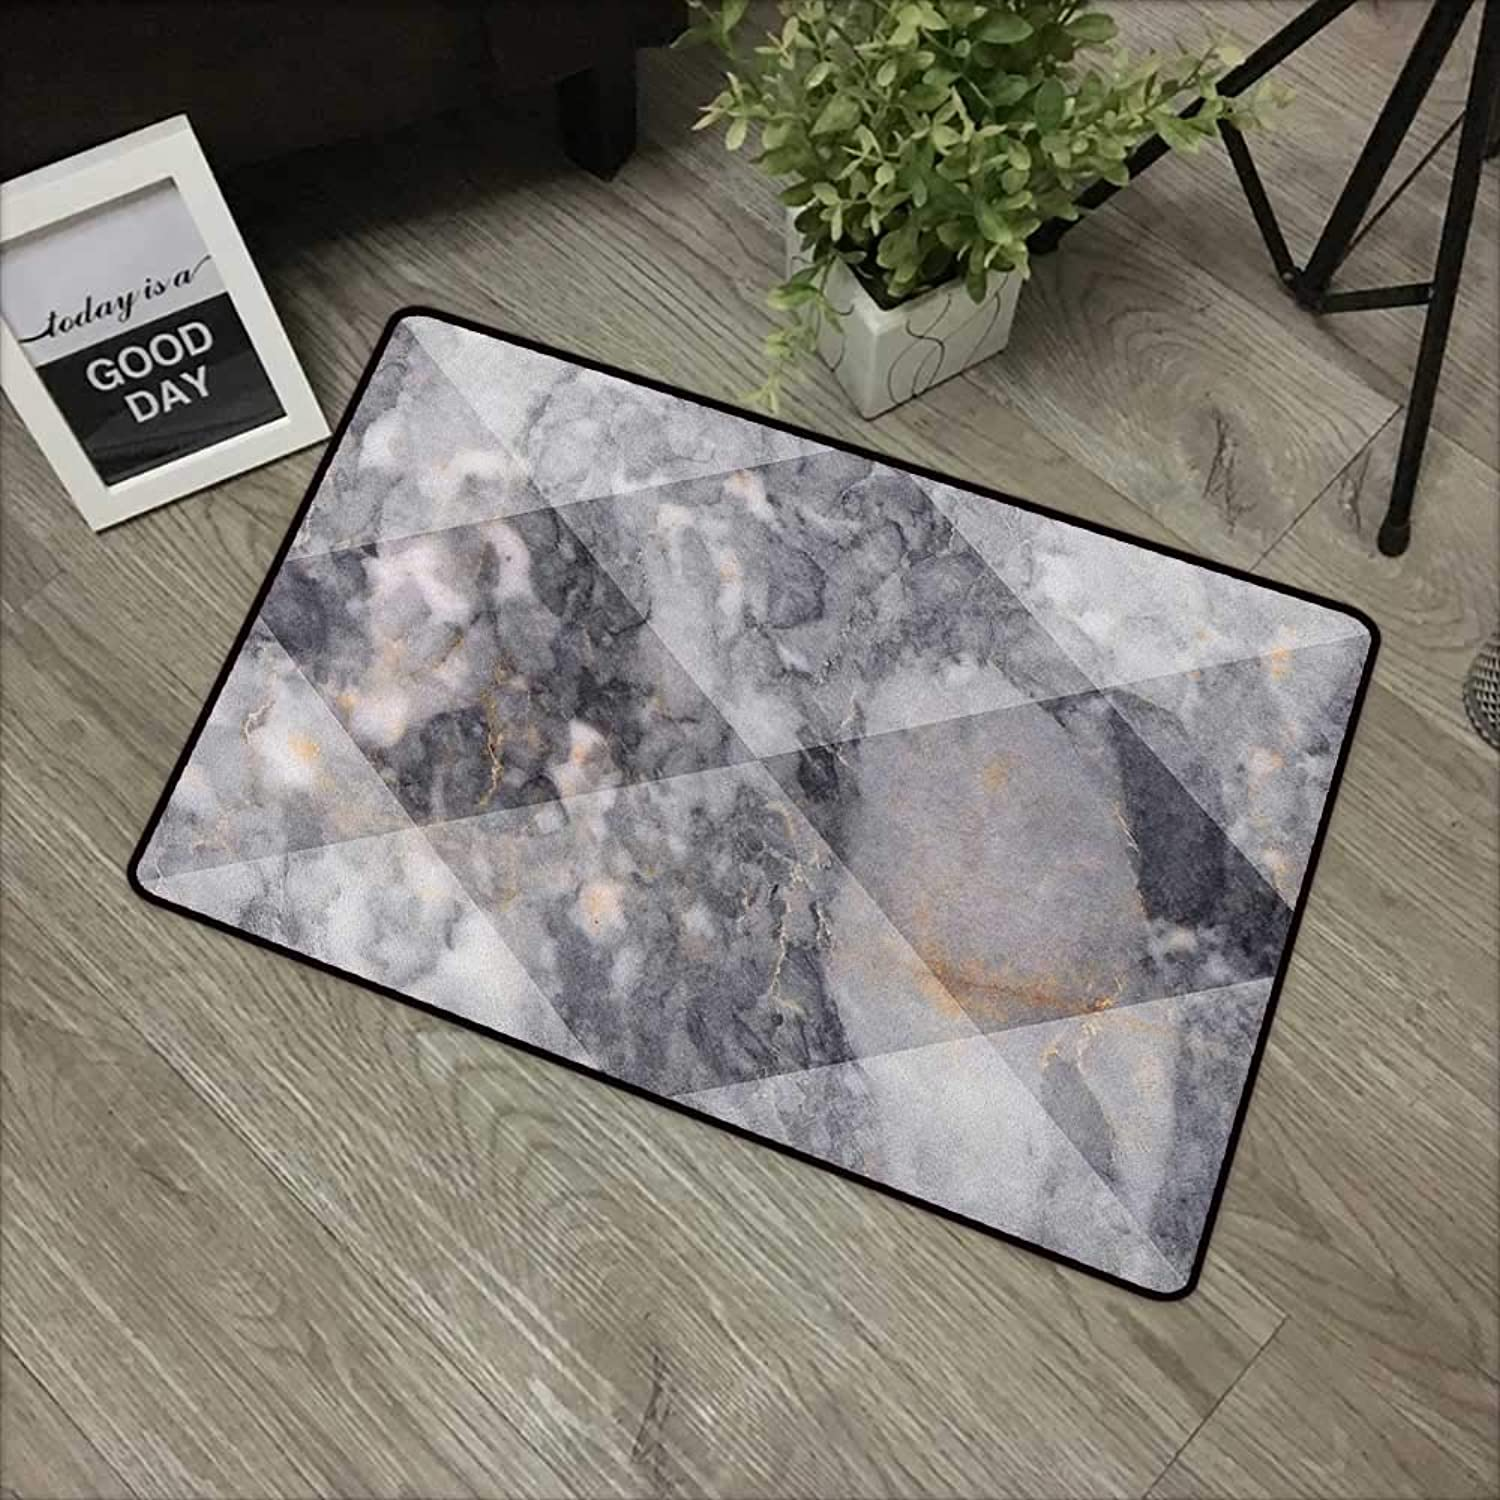 Bathroom Door mat W35 x L59 INCH Marble,Geometric Diamond Shaped Grunge Granite Rock Facet Forms Ceramic Abstract Print, Pale Grey Non-Slip, with Non-Slip Backing,Non-Slip Door Mat Carpet